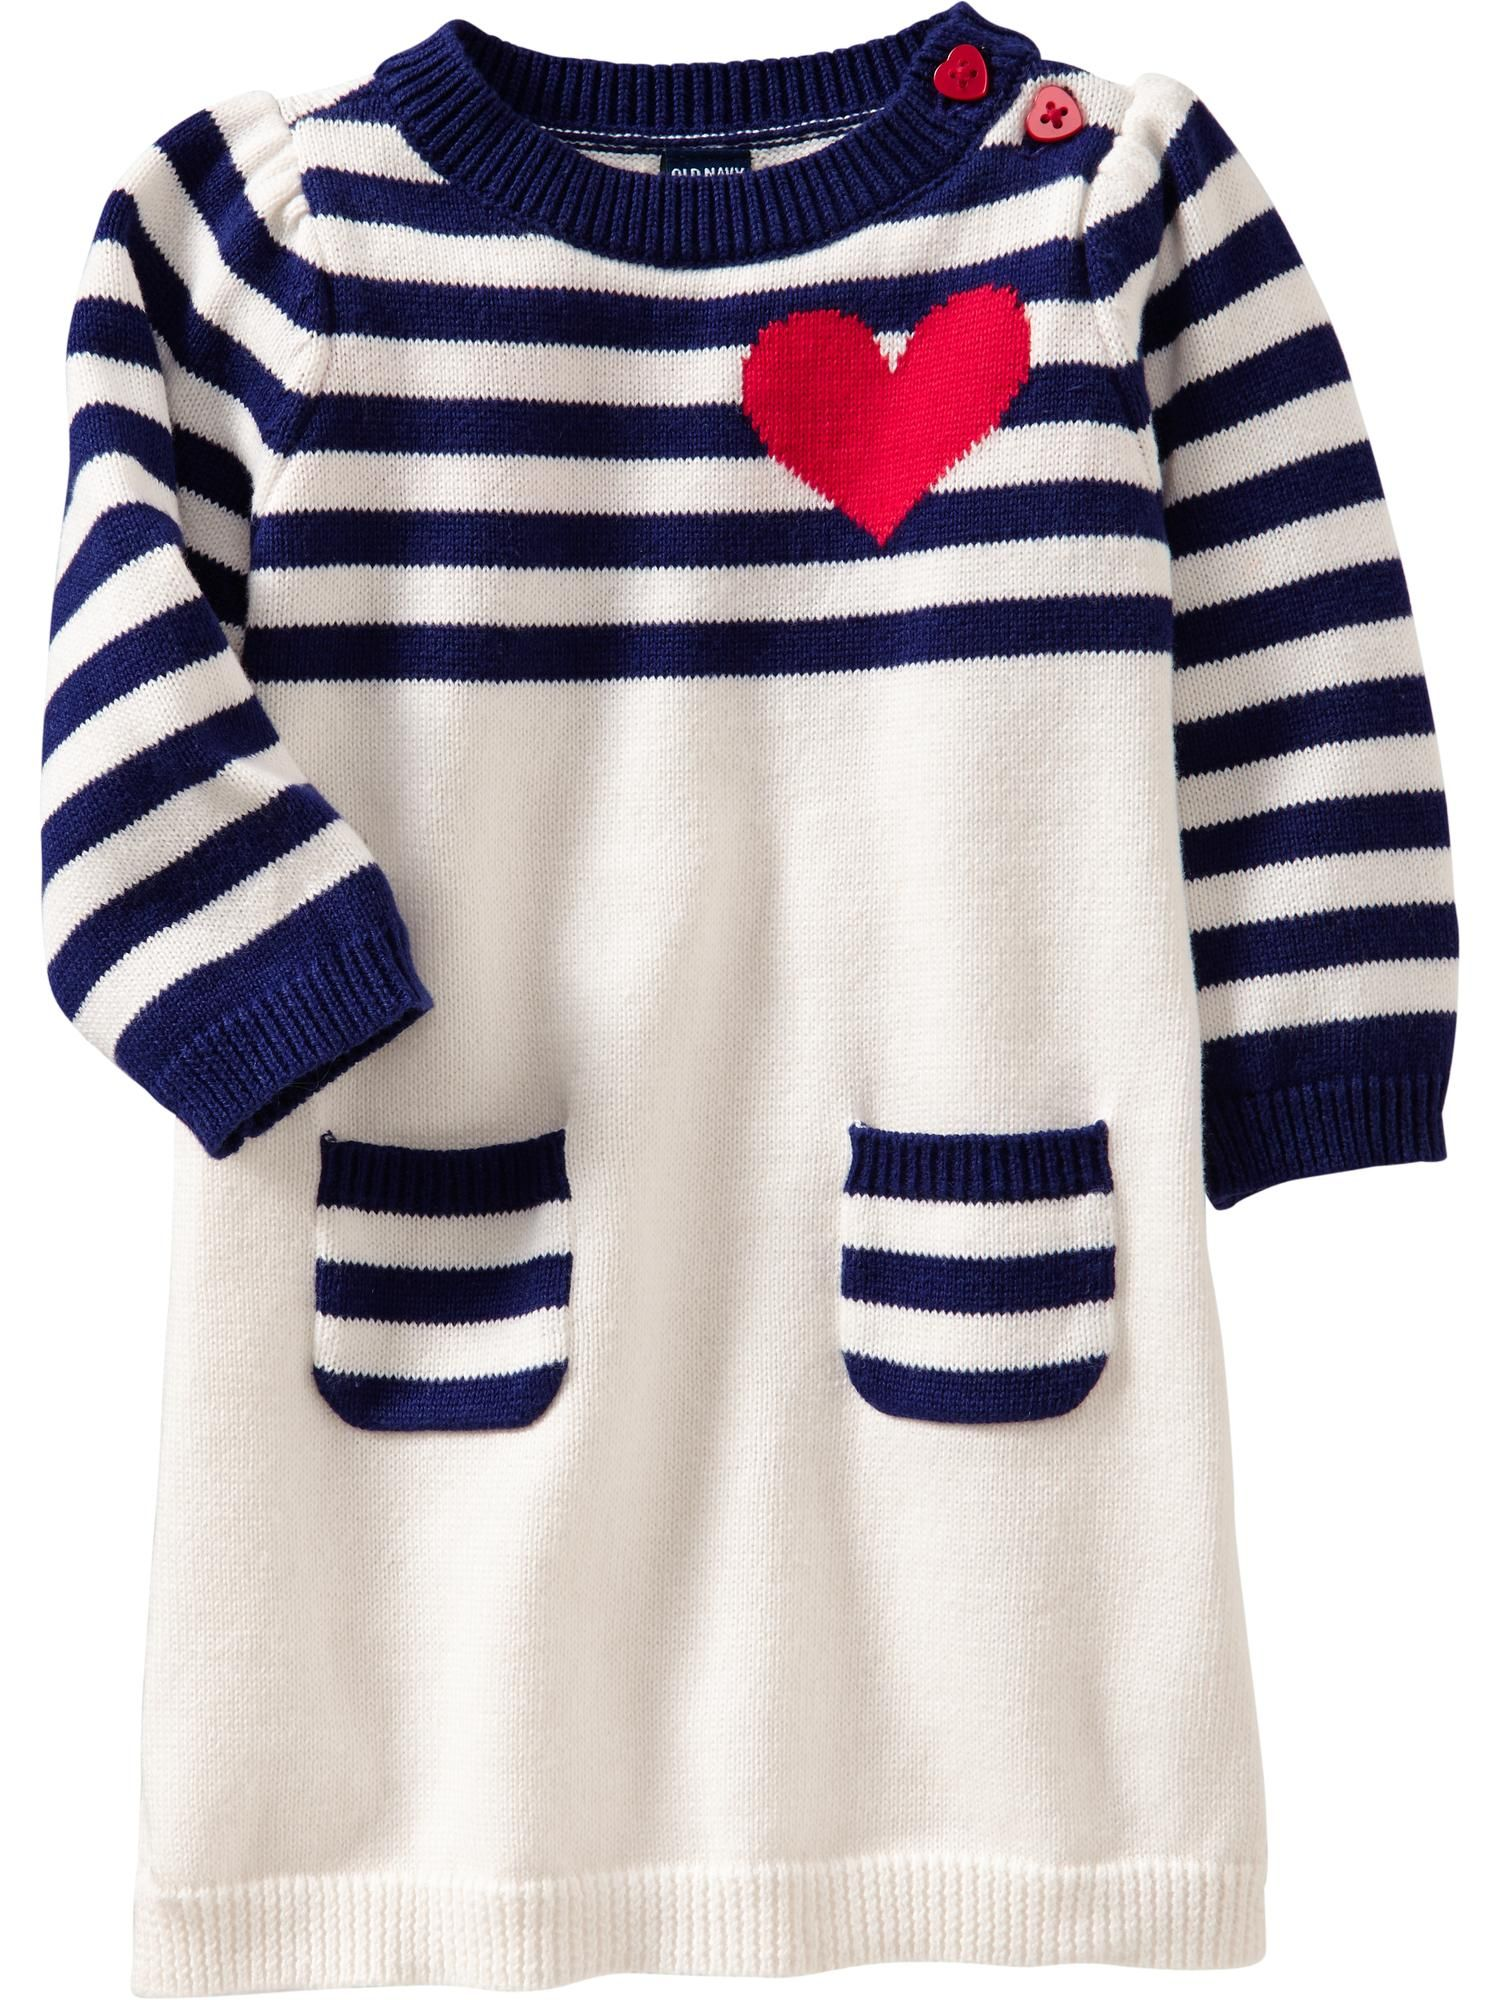 Old Navy Heart Graphic Sweater Dresses for Baby Baby